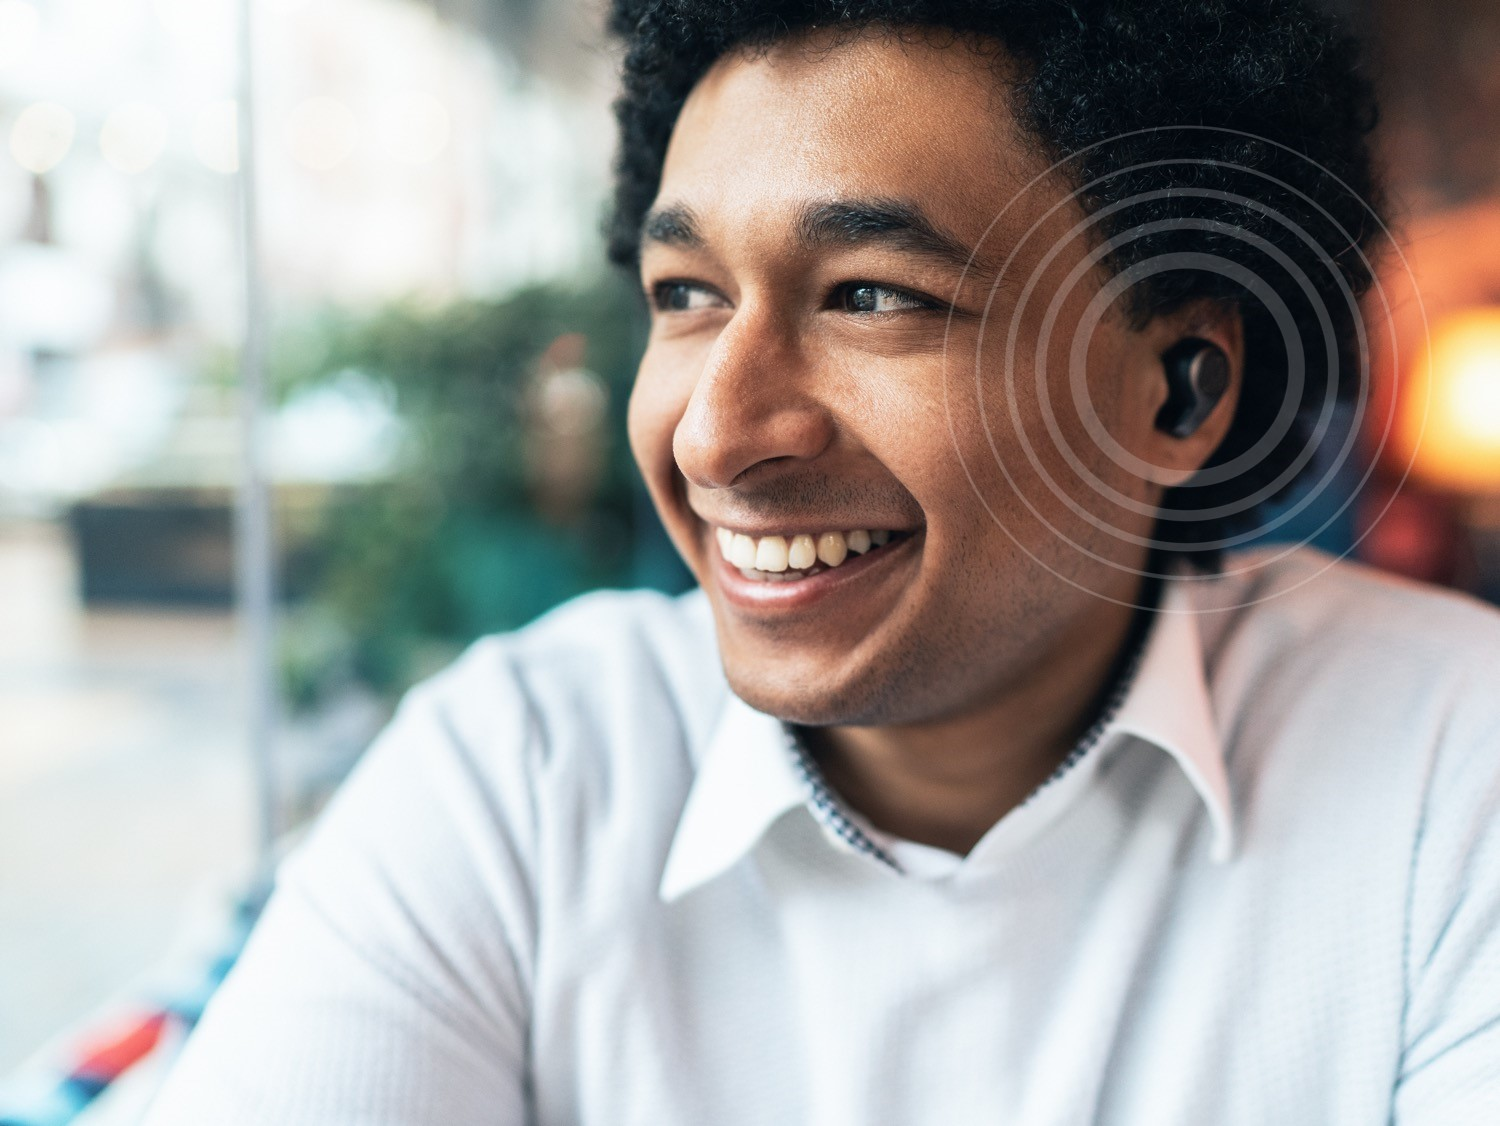 Man wearing earbud